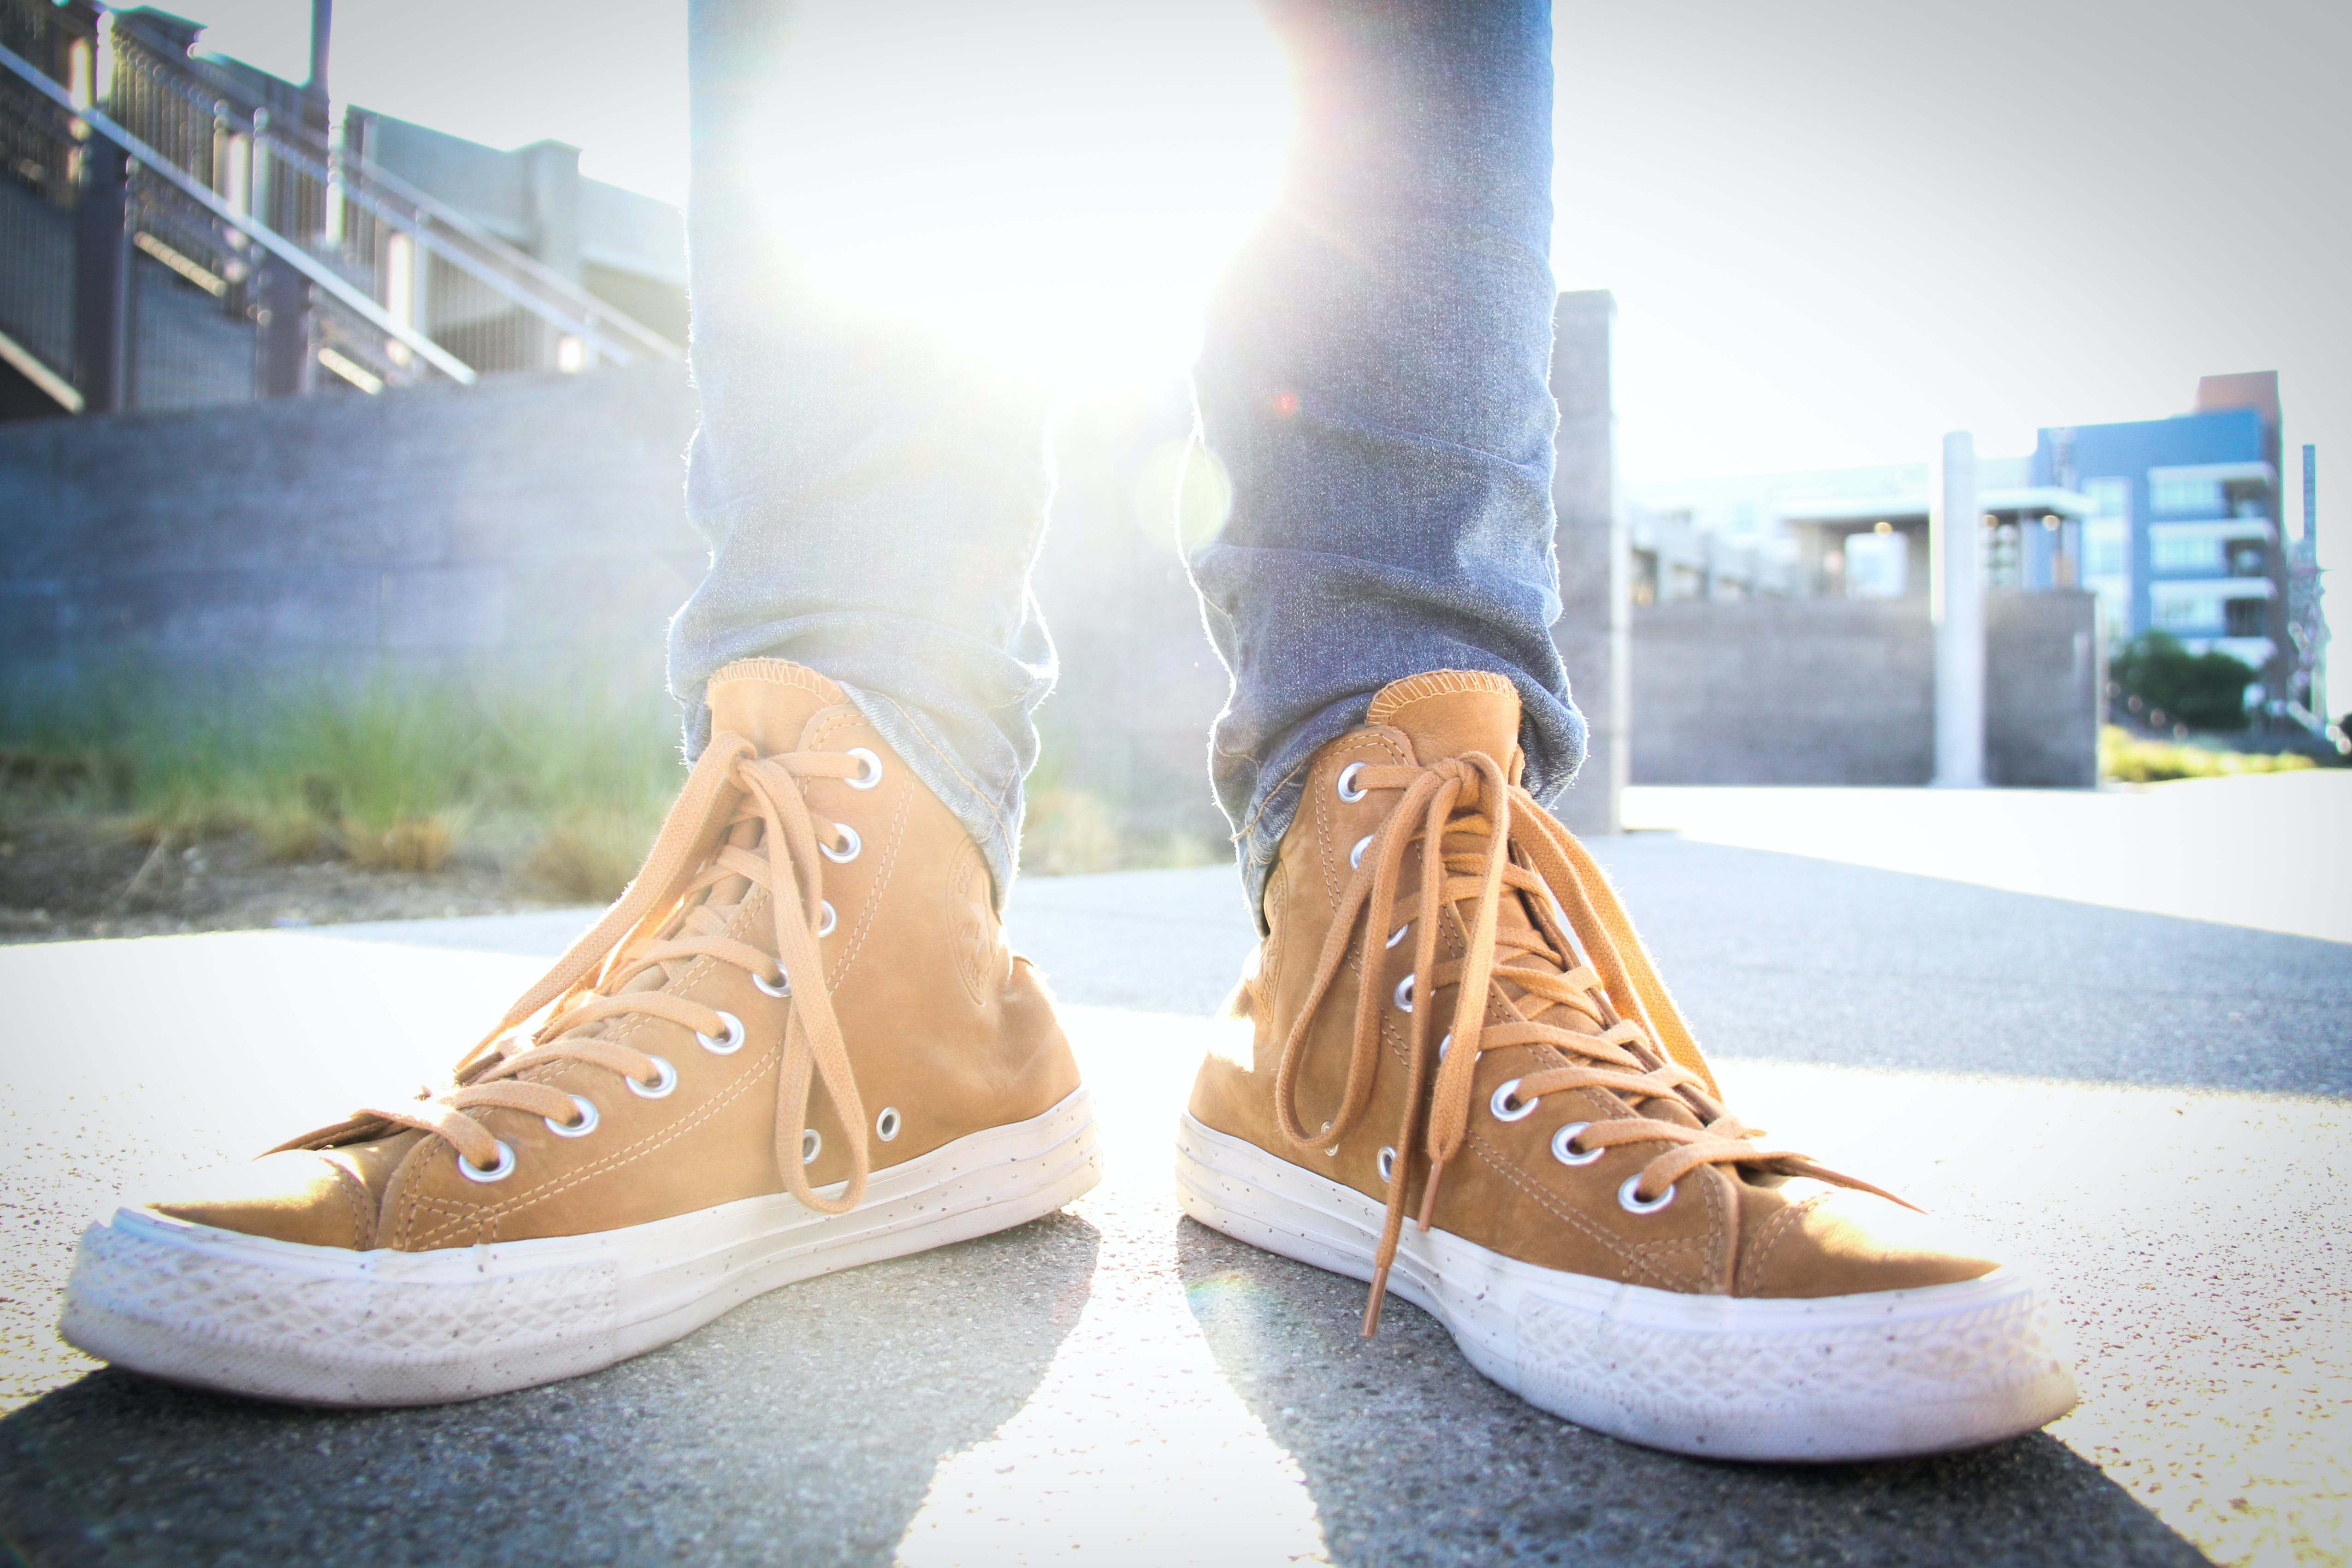 Person Wearing Brown-and-white High-top Sneakers